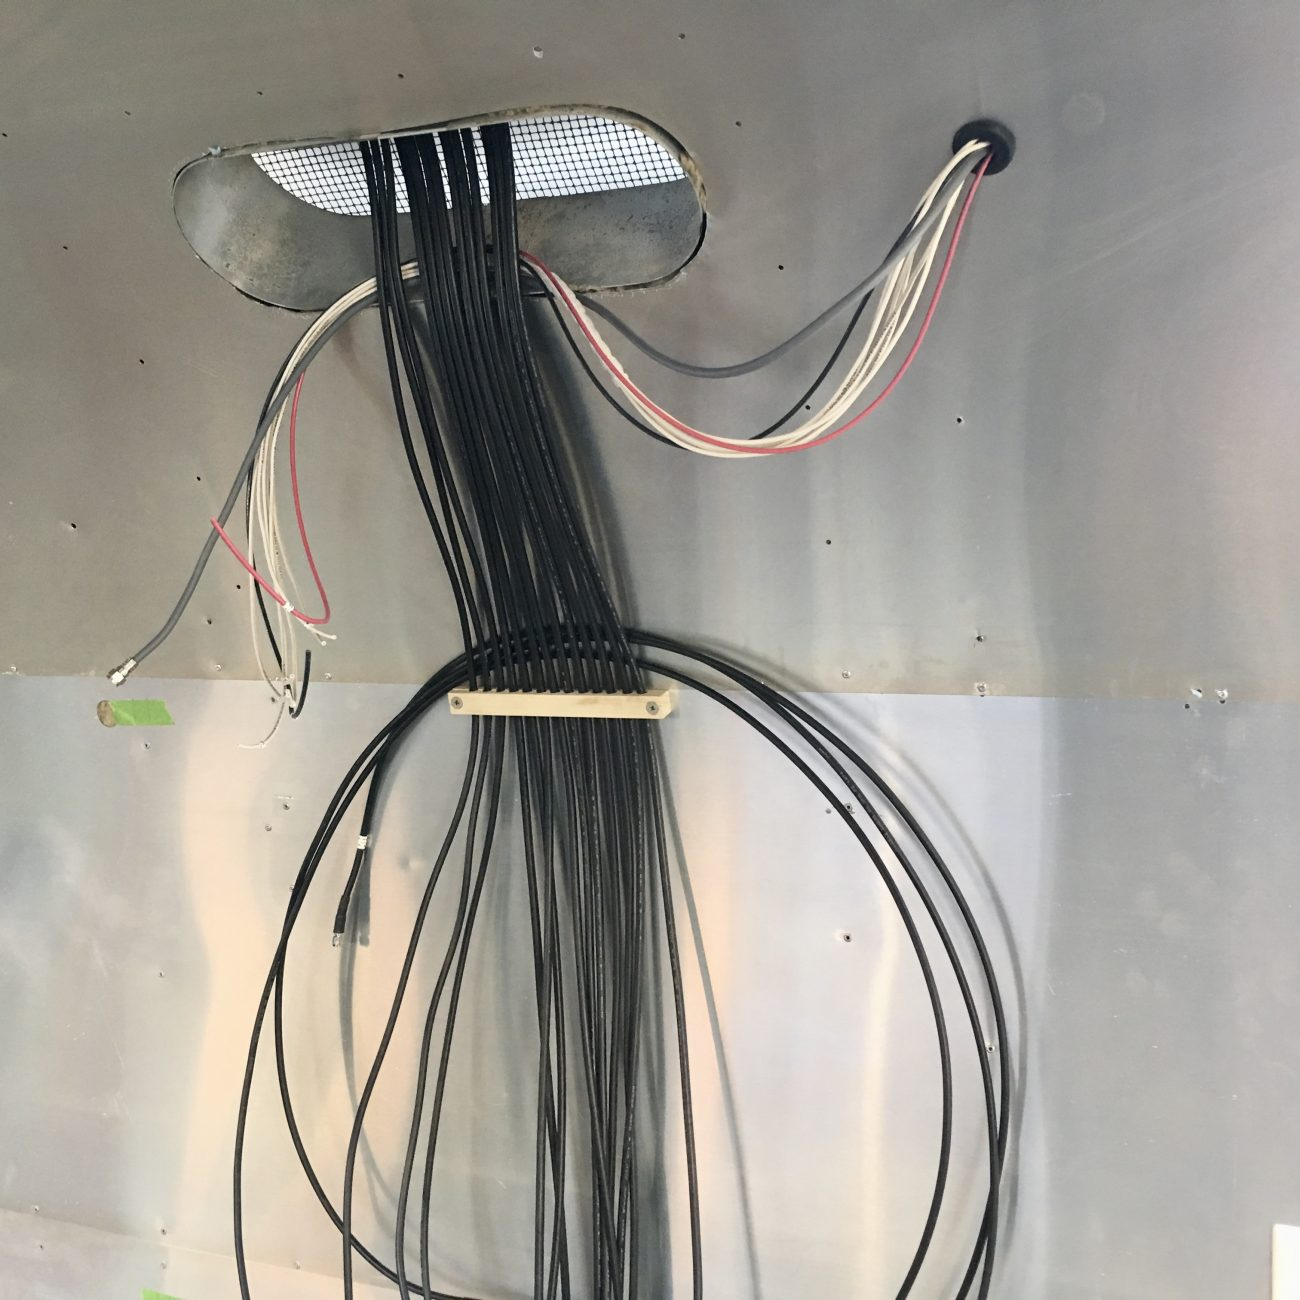 Wires coming through refrigerator vent.